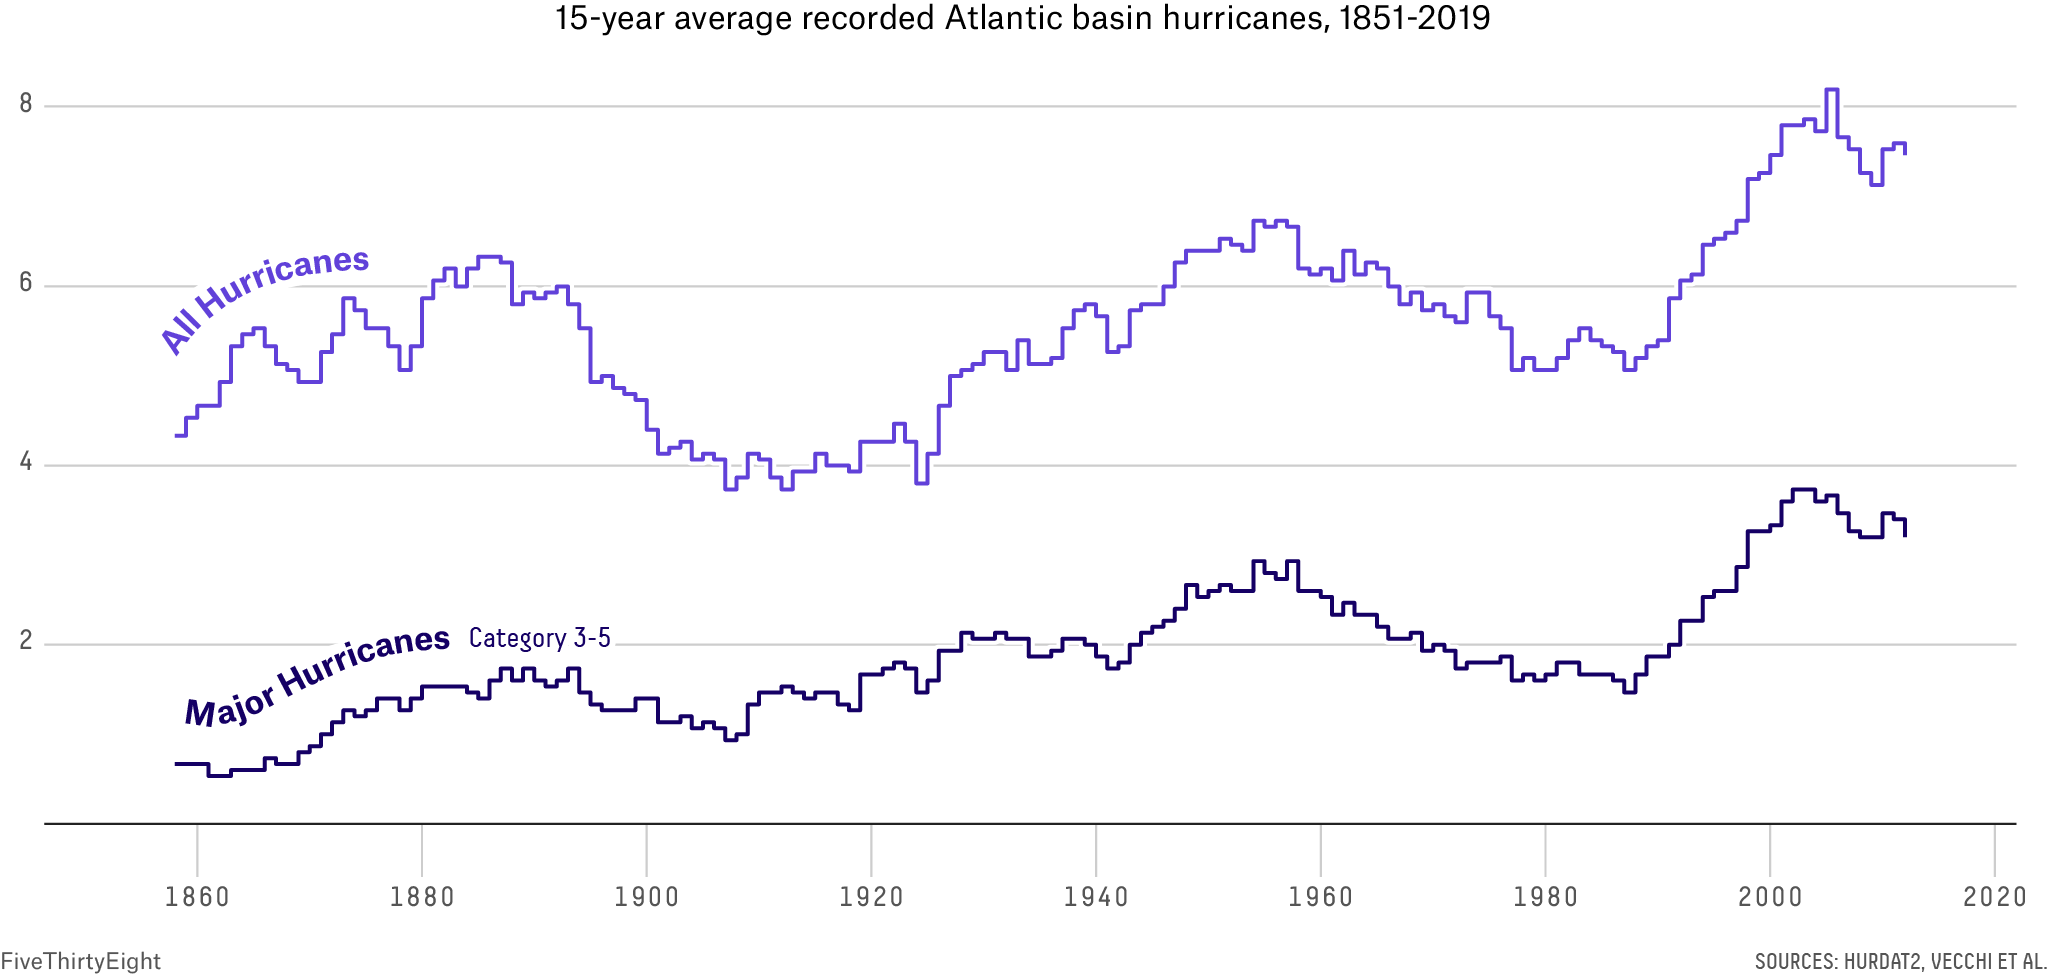 A line chart showing lines for the 15-year smoothed average number of Atlantic basin hurricanes and major hurricanes between 1851 and 2019. Both lines appear to trend slowly upward with consistent variability.